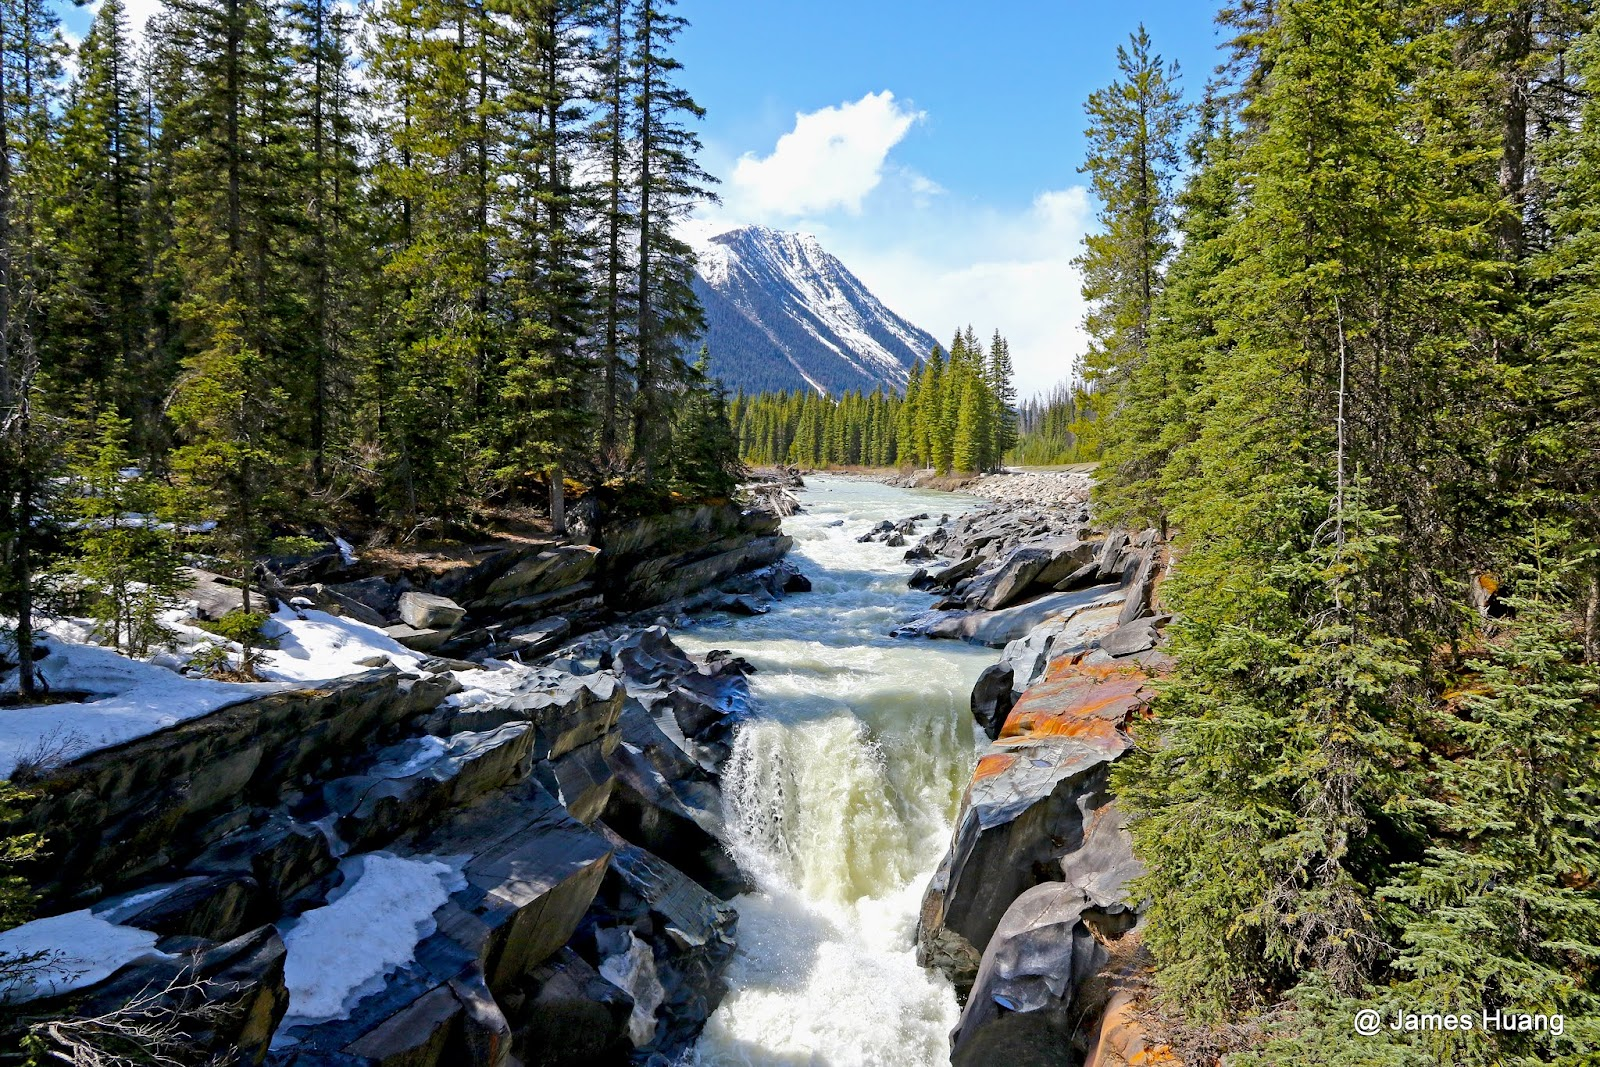 Numa falls kootenay national park british columbia canada numa falls kootenay national park british columbia canada sciox Image collections